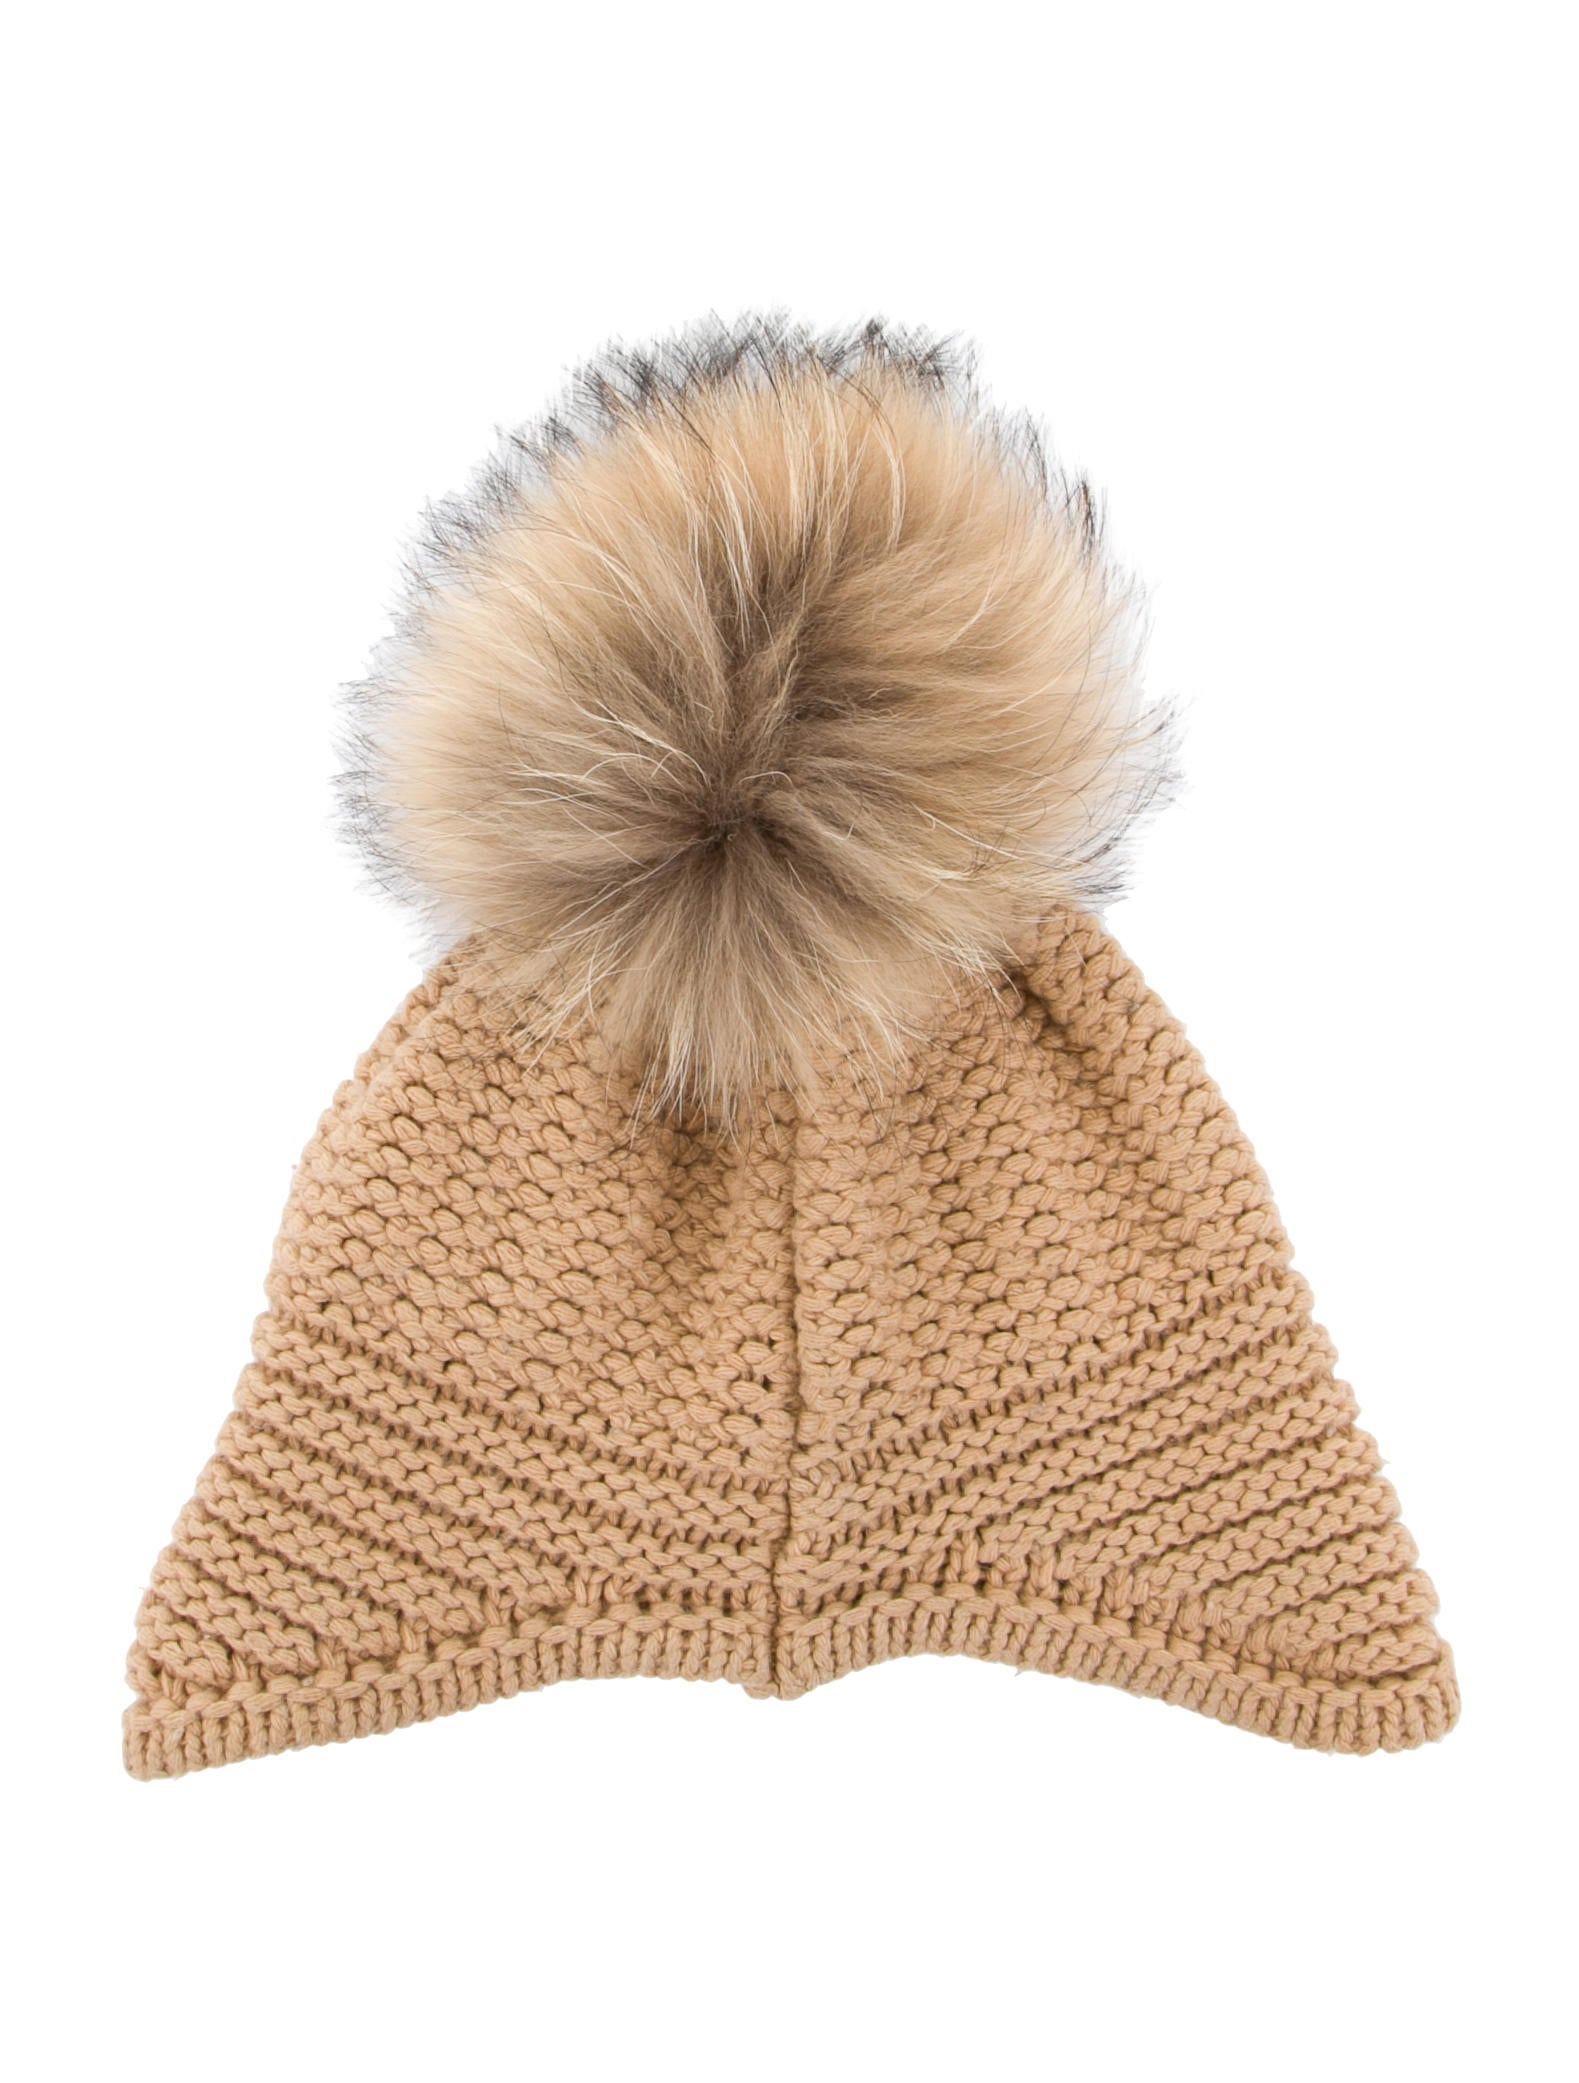 Pom Pom Beanie Knitting Pattern : Moncler Knit Pom-Pom Beanie - Accessories - MOC24773 The RealReal